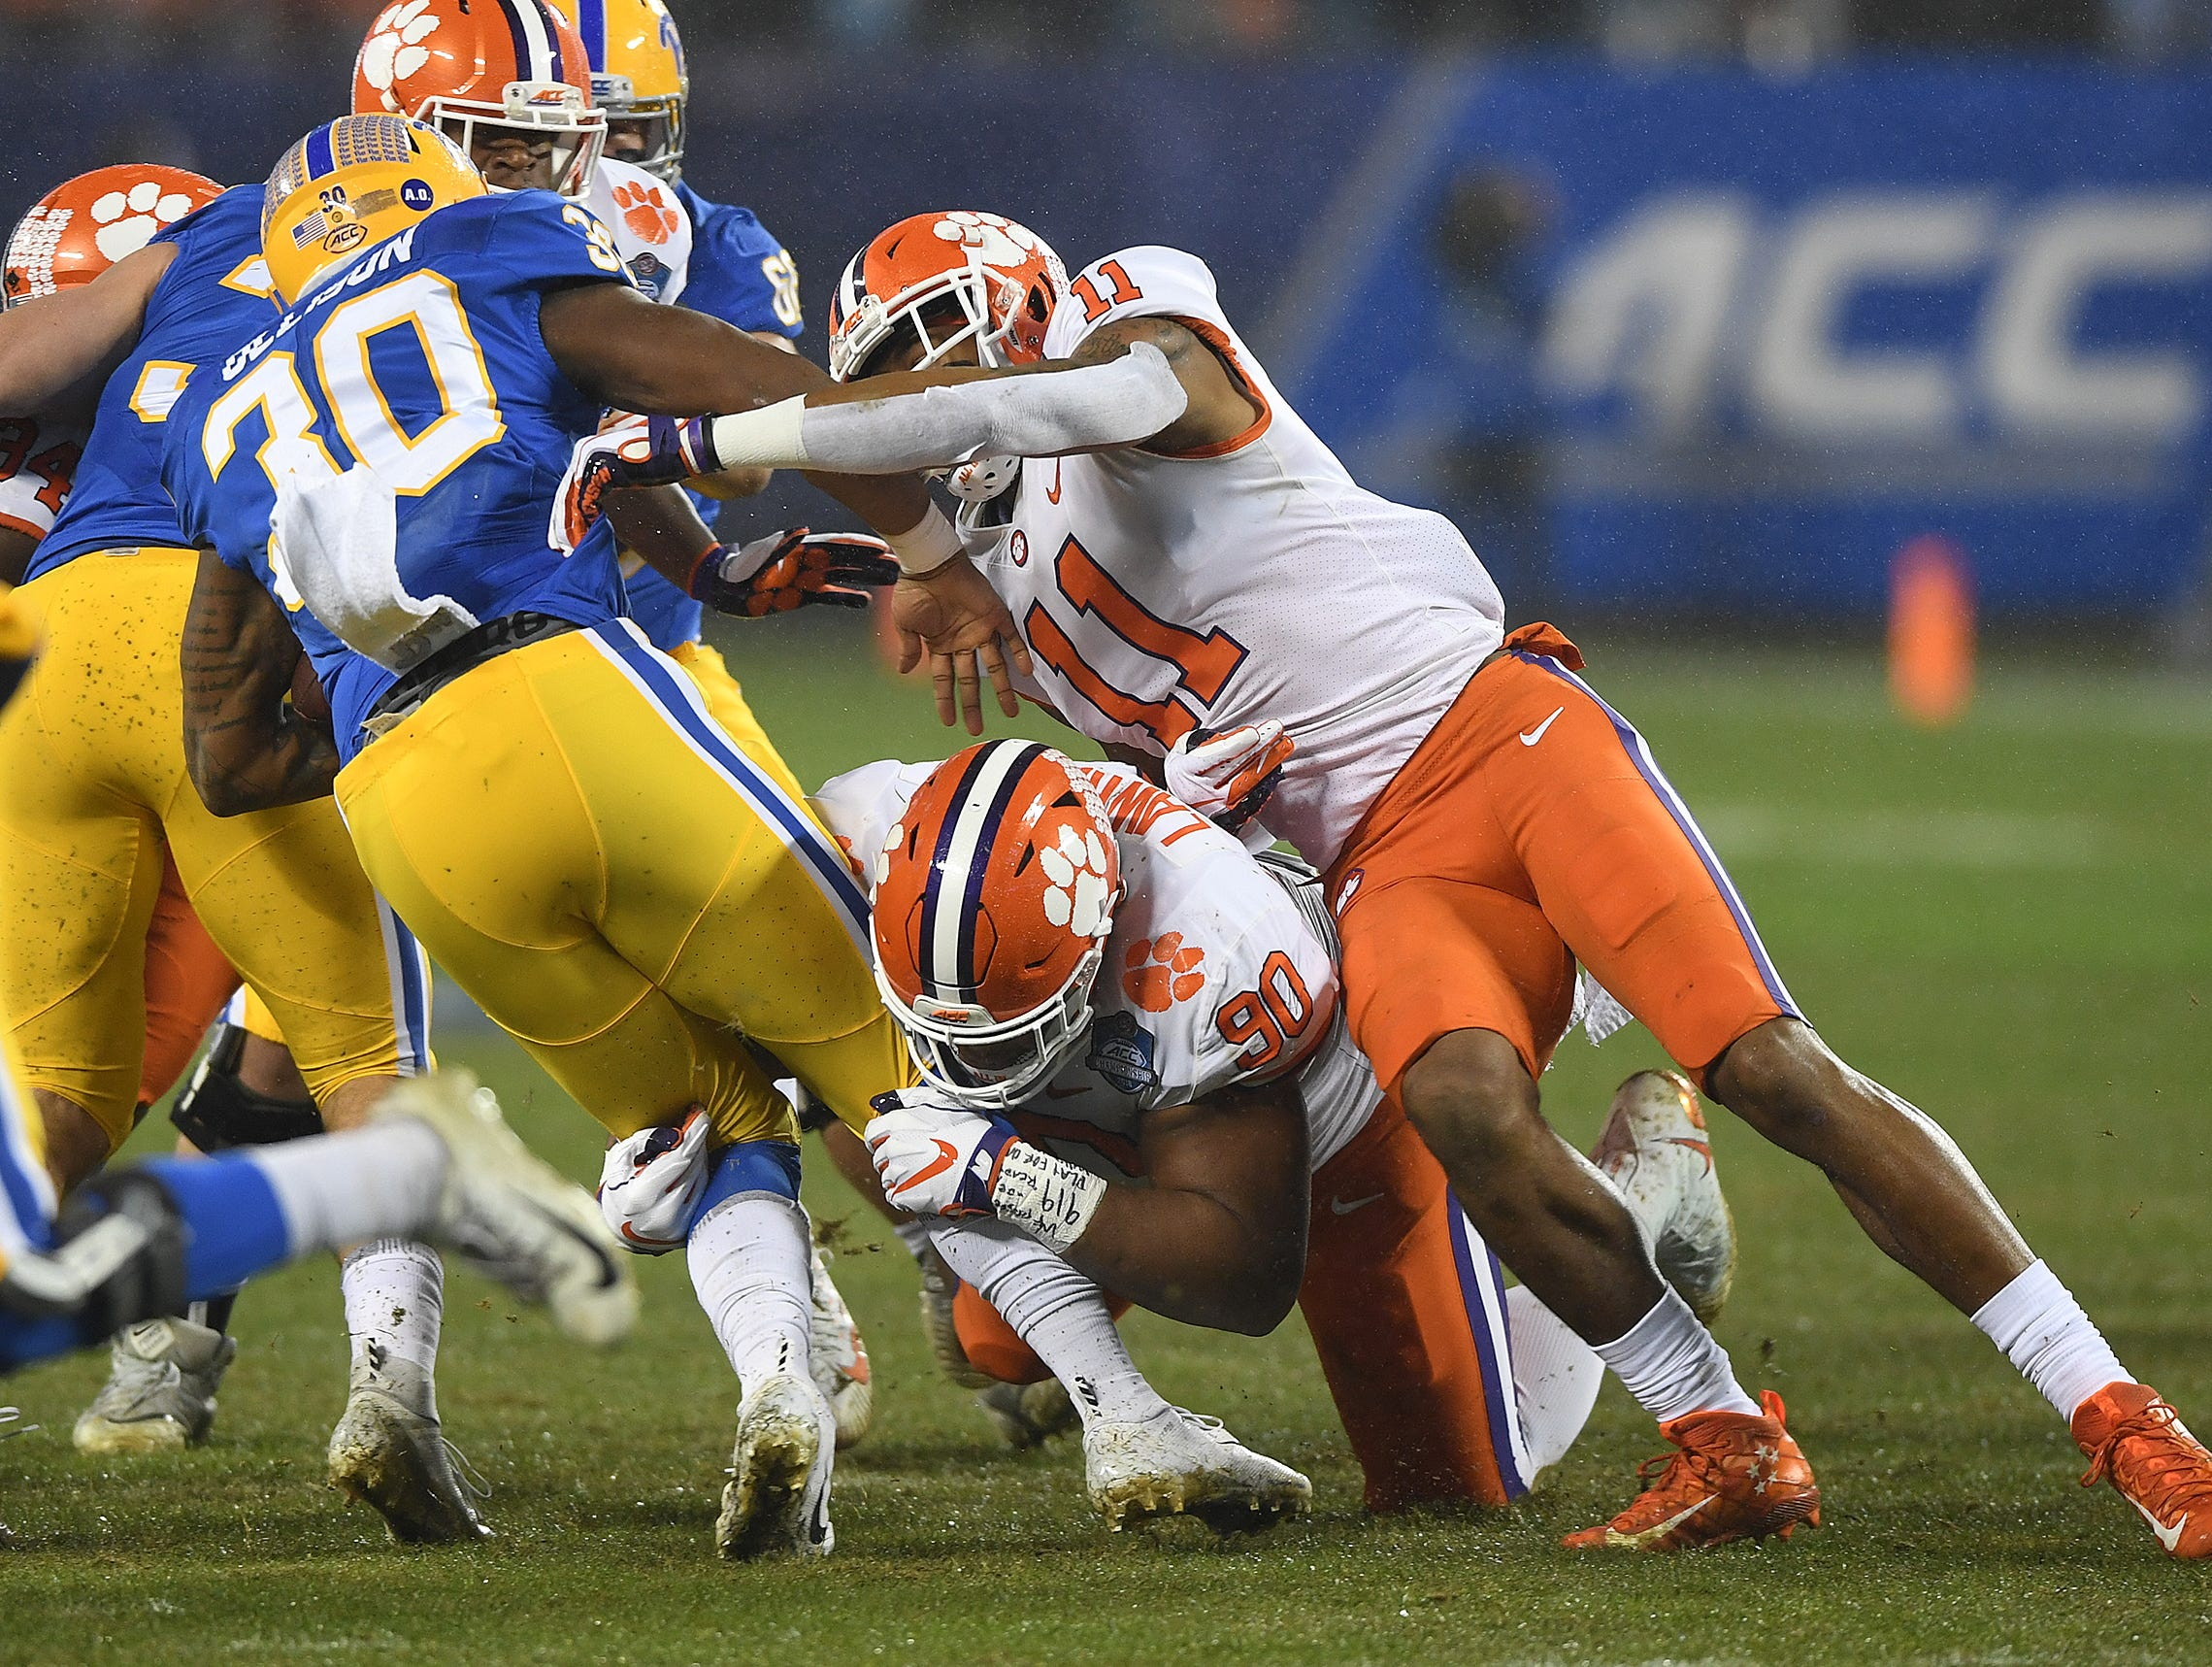 Clemson defensive lineman Dexter Lawrence (90) and safety Isaiah Simmons (11) bring down Pittsburgh running back Qadree Ollison (30) during the 1st quarter of the Dr. Pepper ACC Championship at Bank of America Stadium in Charlotte, N.C. Saturday, December 1, 2018.